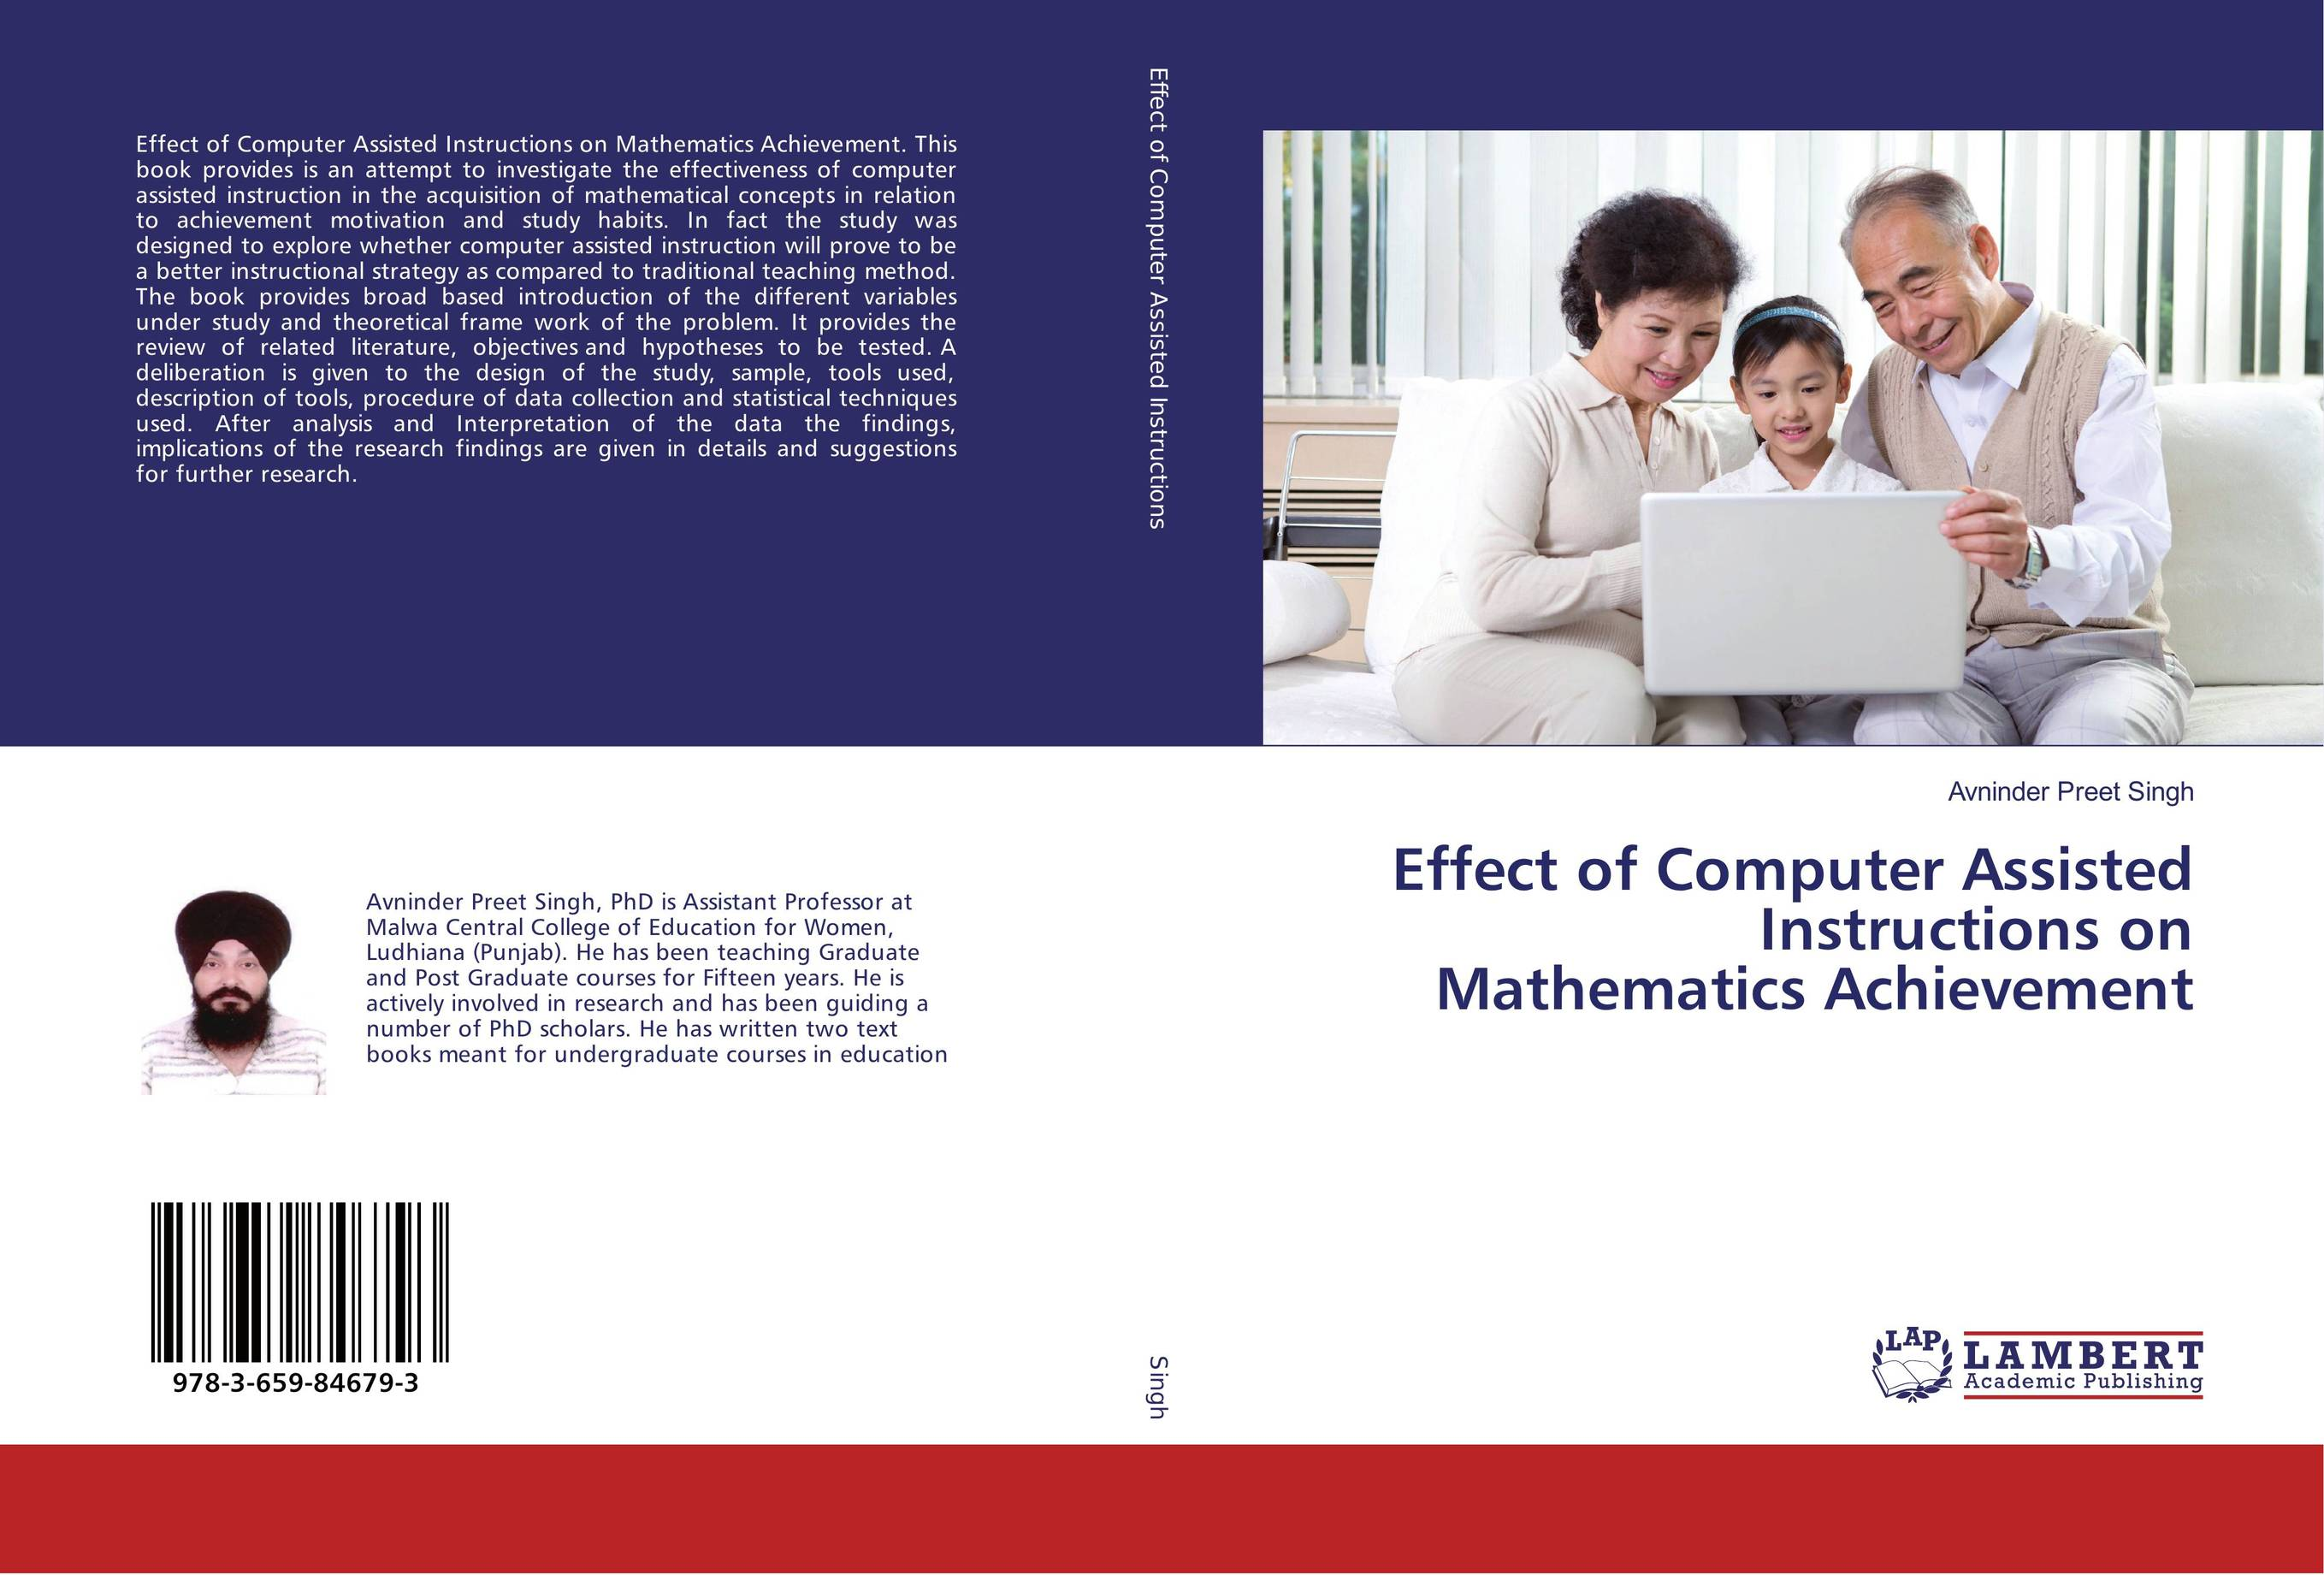 Effect of Computer Assisted Instructions on Mathematics Achievement rupesh patel analysis of computer assisted learning material